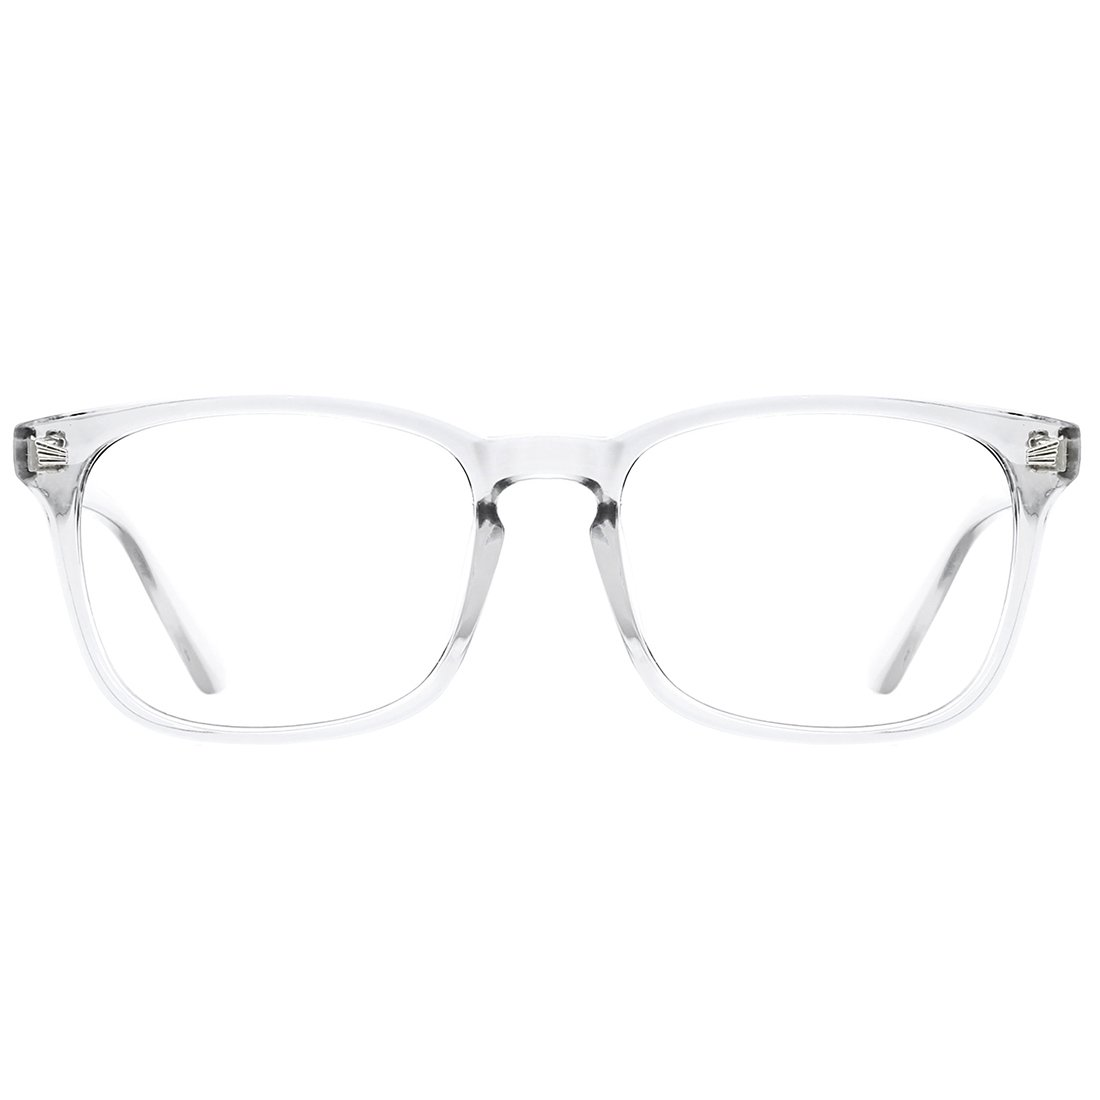 cfa745fd2f1 TIJN Blue Light Blocking Glasses Square Nerd Eyeglasses Frame Computer Game  Glasses  Amazon.ca  Clothing   Accessories